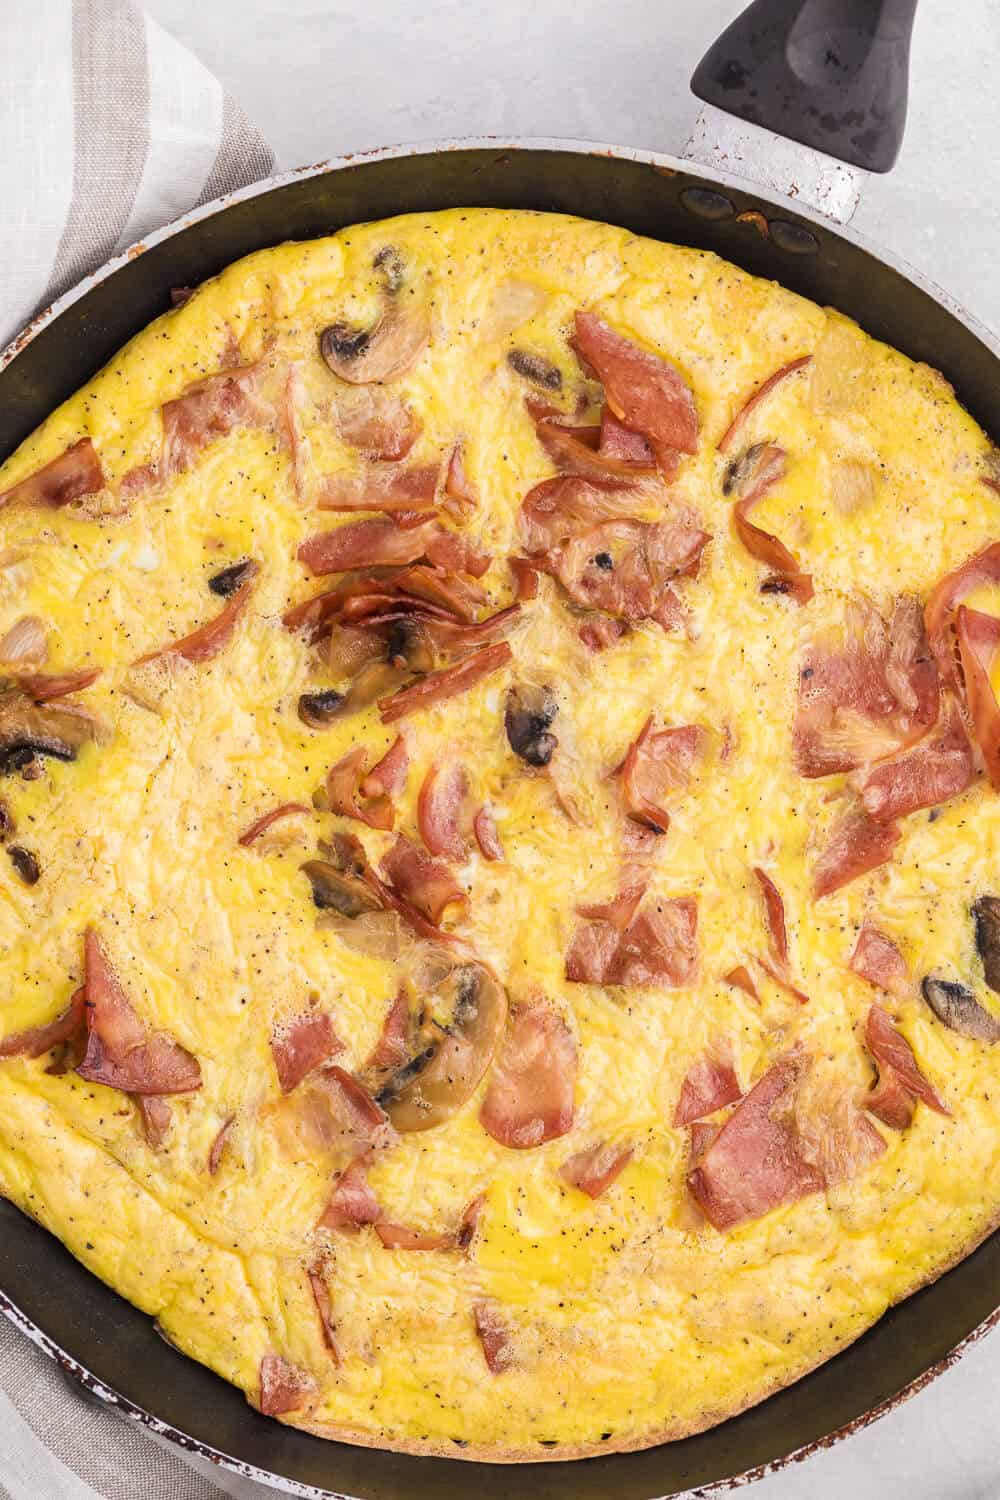 Turkey Bacon Frittata - Cut a few calories on this amazing brunch dish! Swap the pork for turkey in this delicious egg dish that's perfect for breakfast or dinner.